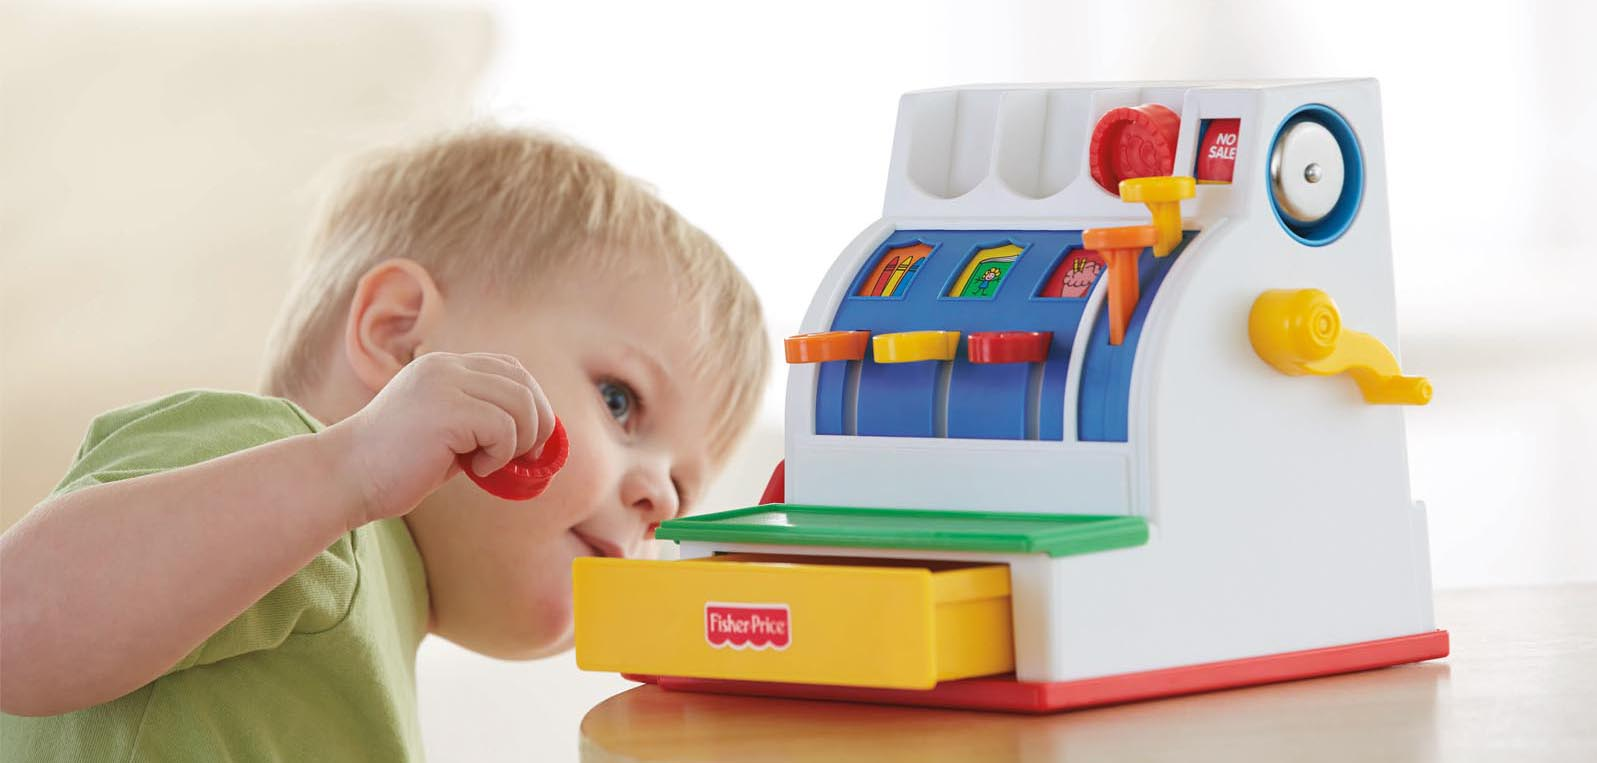 Fisher Price lelut